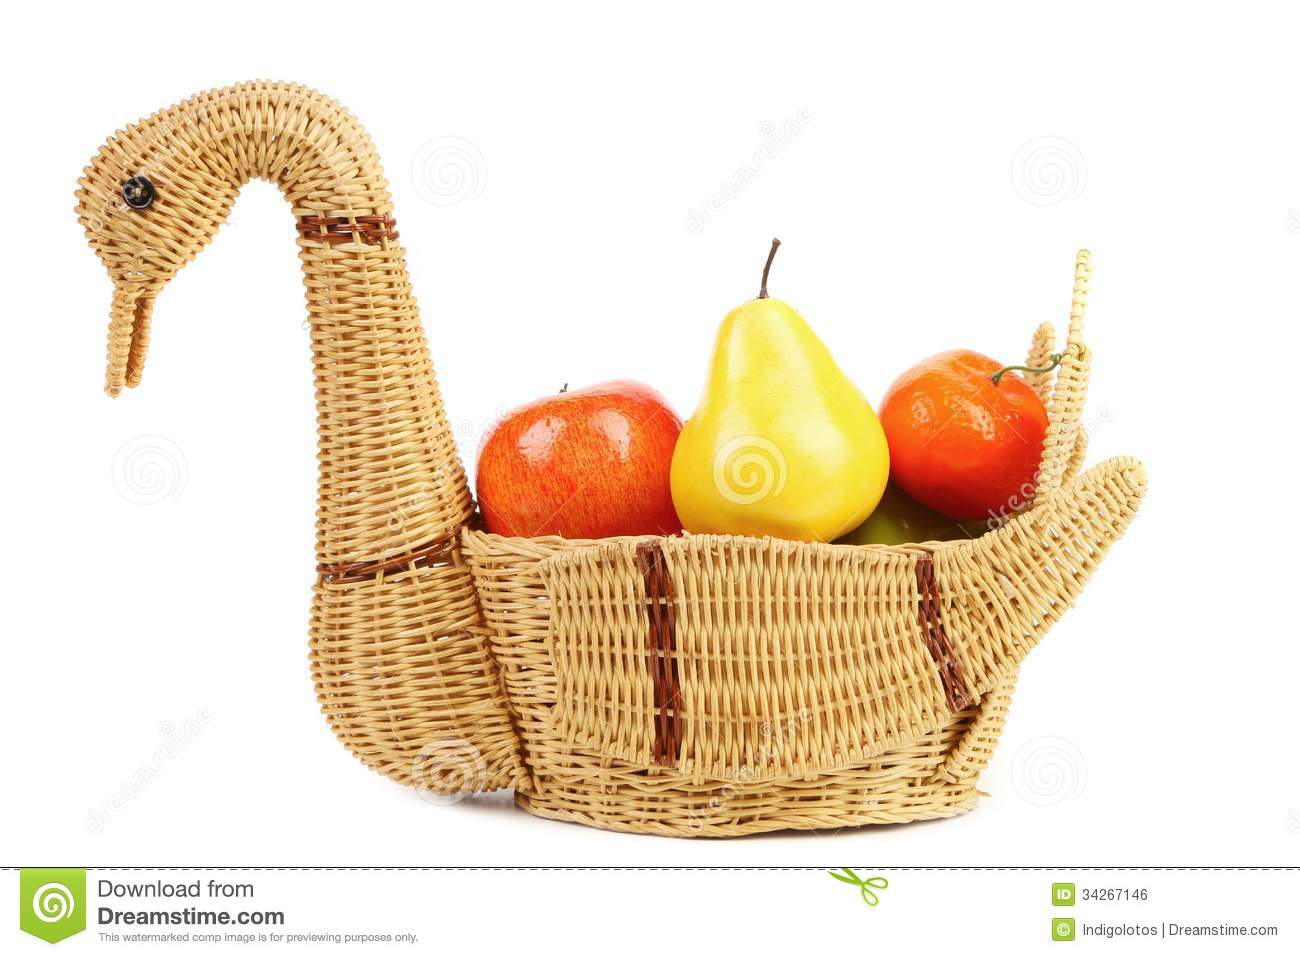 Designer Fruit Basket Basket Swan With Decorative Fruits Royalty Free Stock